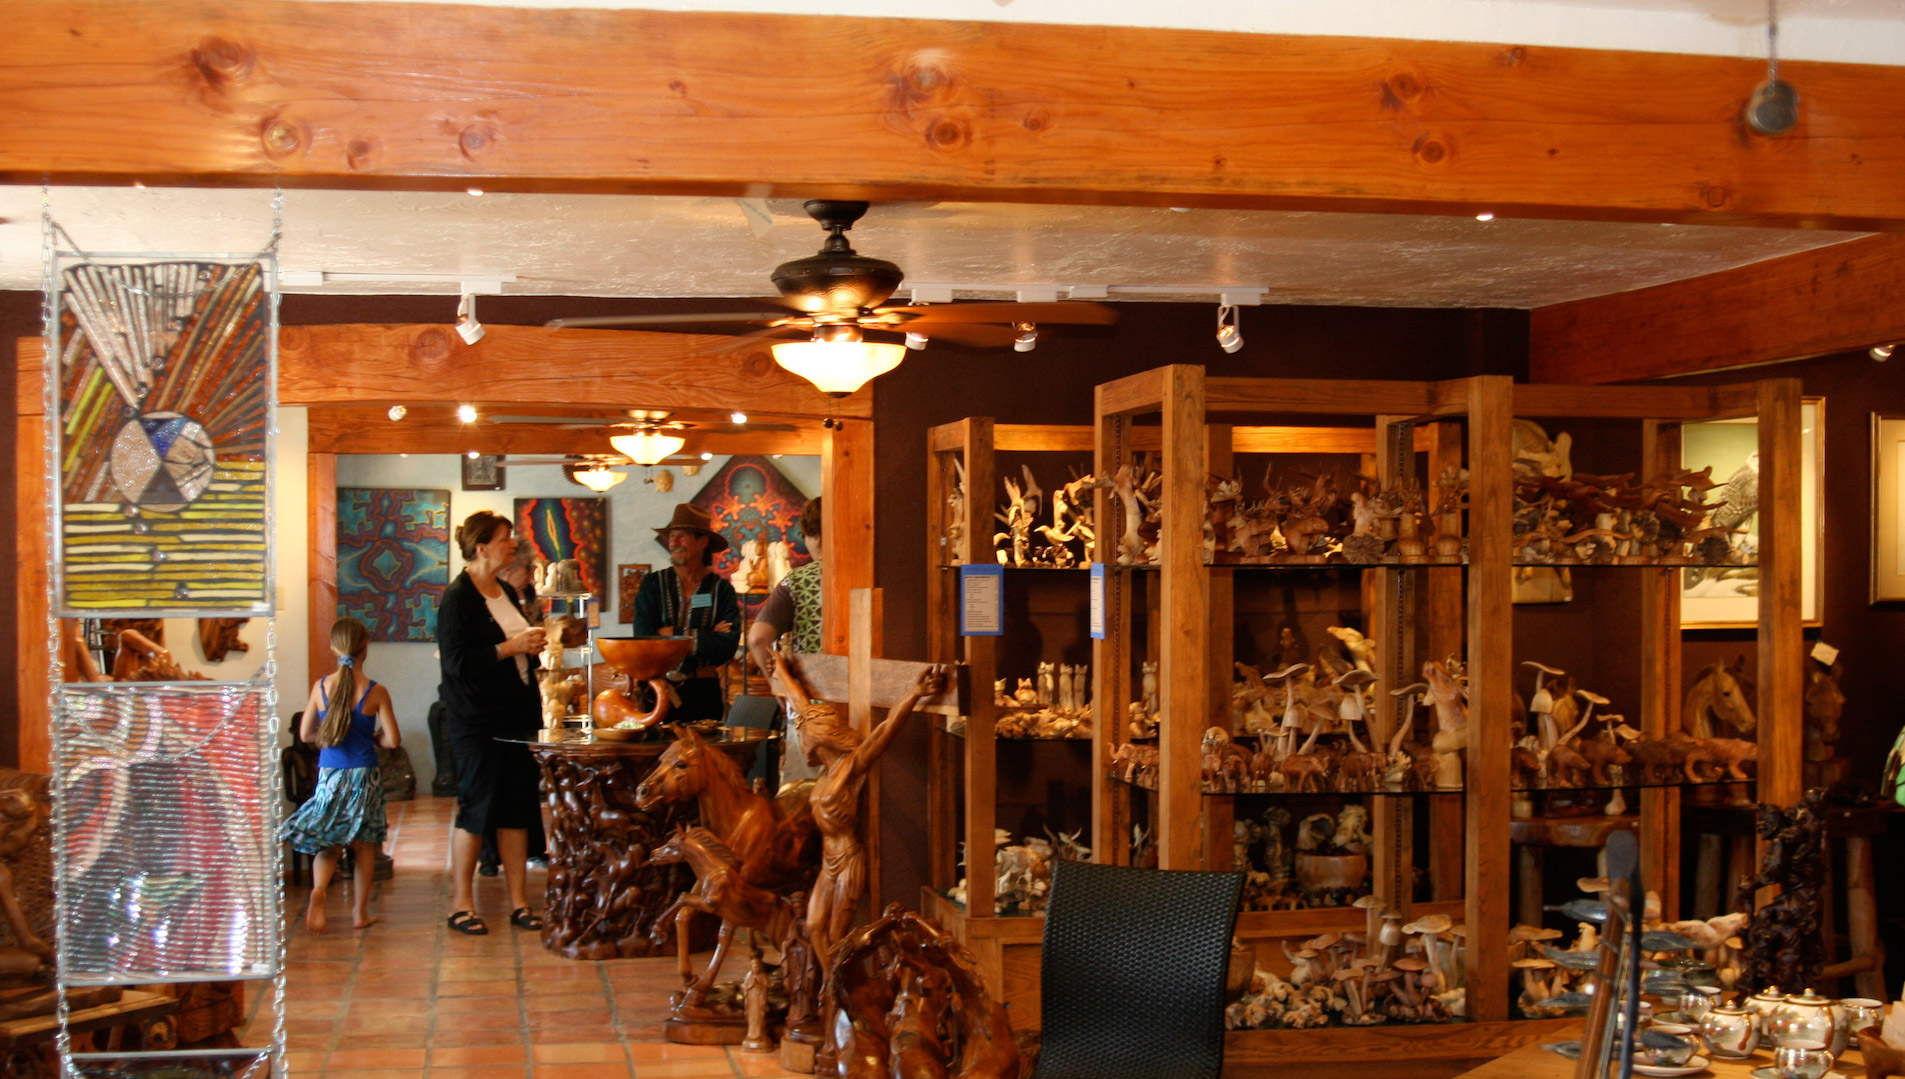 Teak wood carvings line the shelves inside Sacred Treasures.